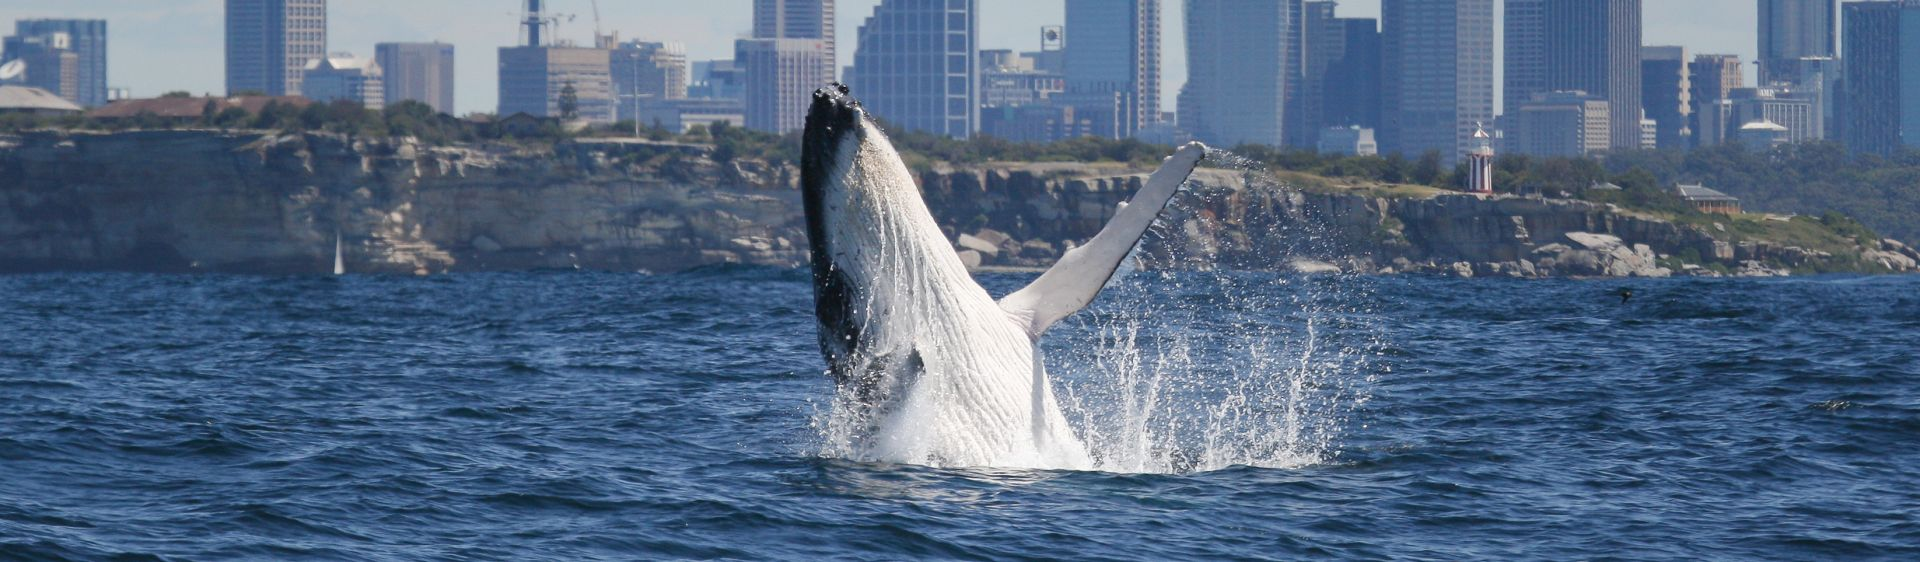 whale watching in sydney whale watching season cruises tours